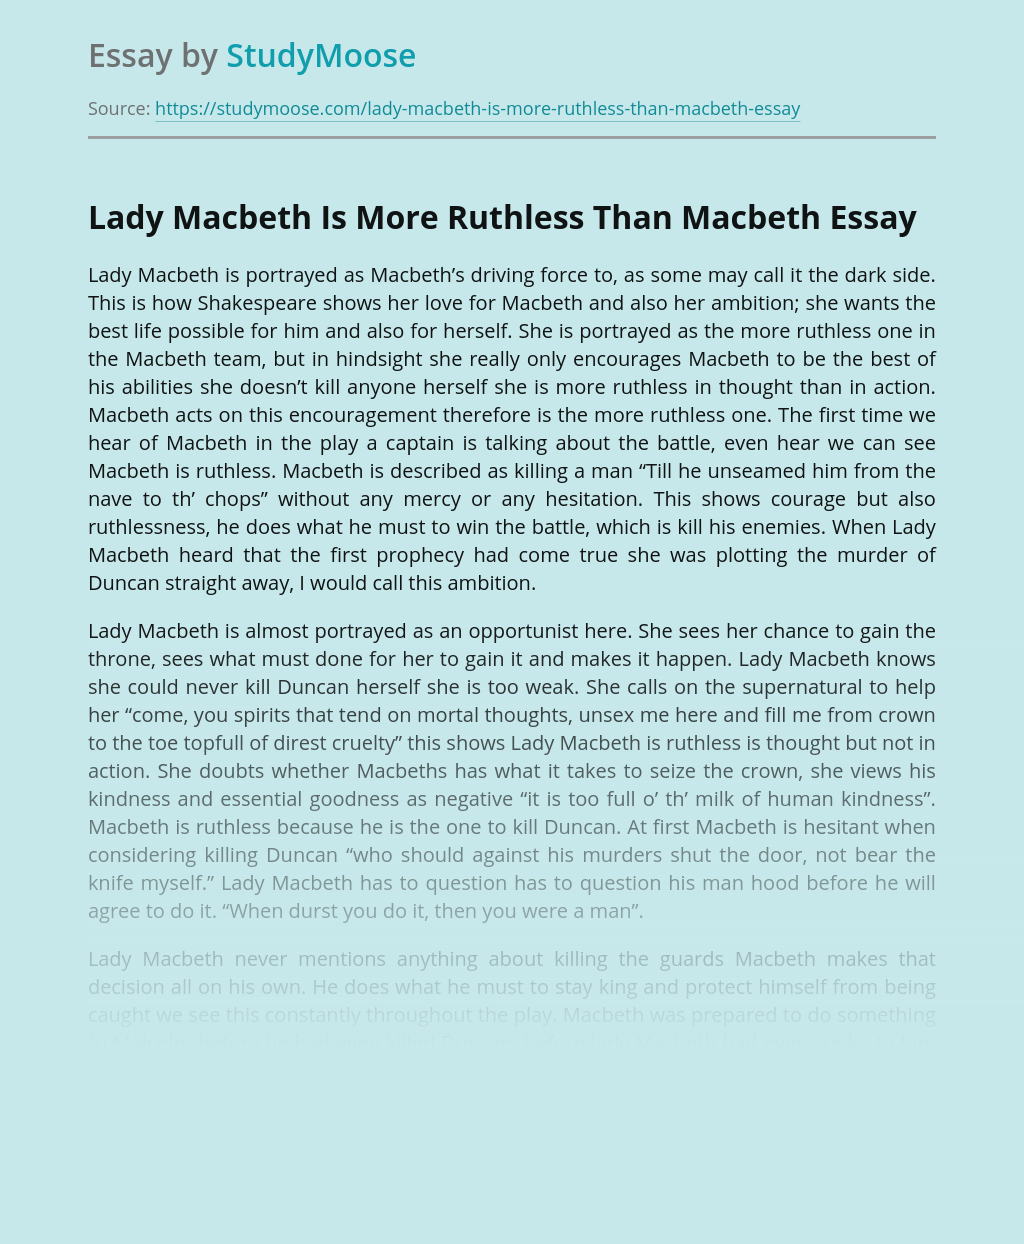 Lady Macbeth Is More Ruthless Than Macbeth